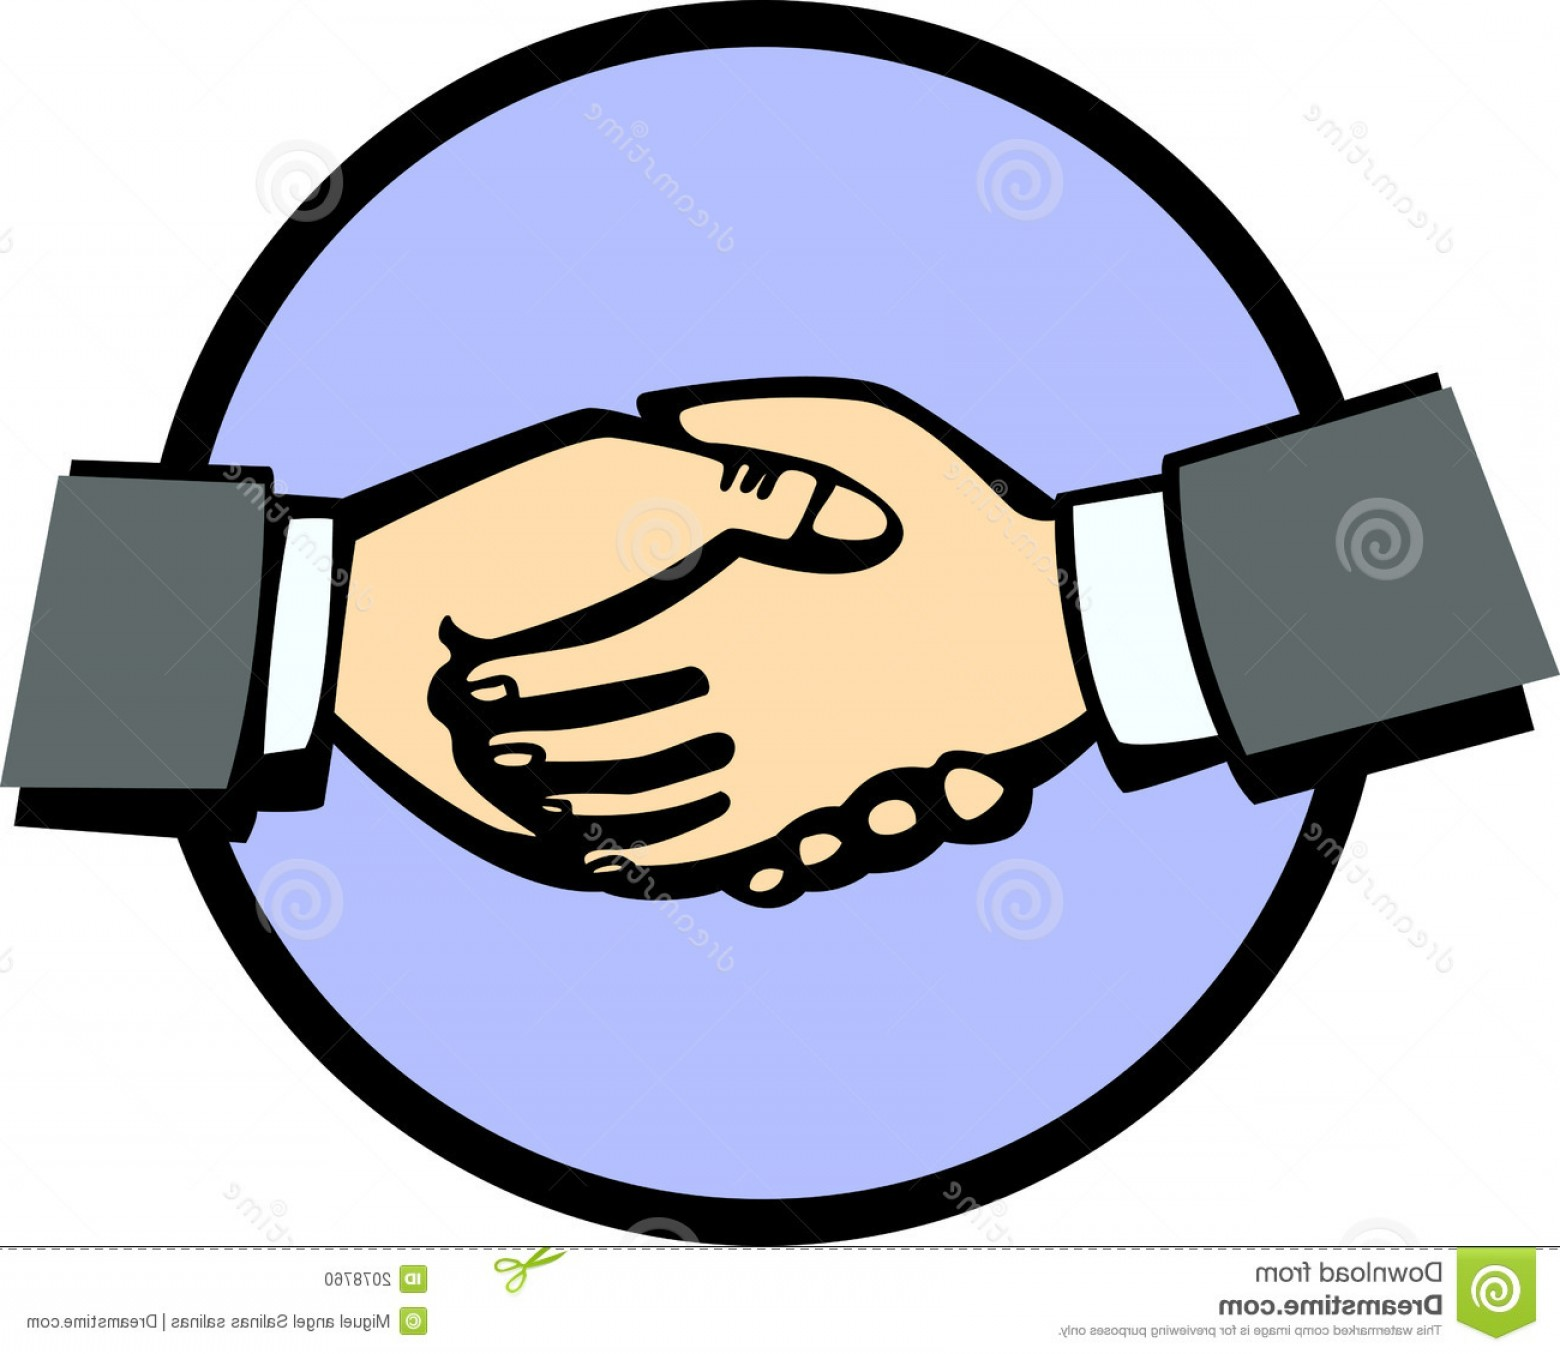 Handshake Vector Art: Stock Photo Handshake Vector Illustration Image